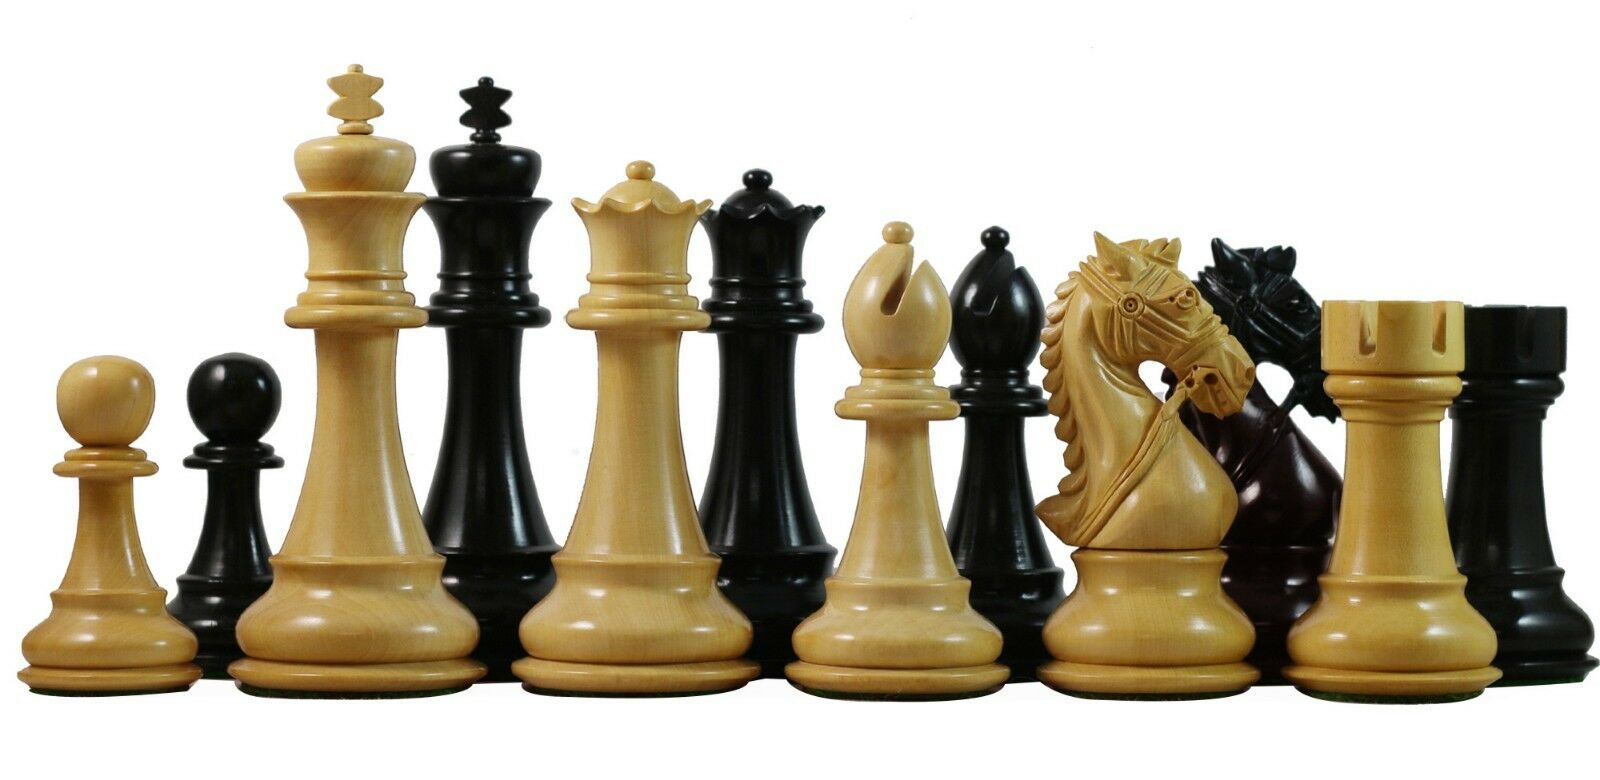 Bridle Series Premium Staunton 4.4  Chess Set in ebony wood